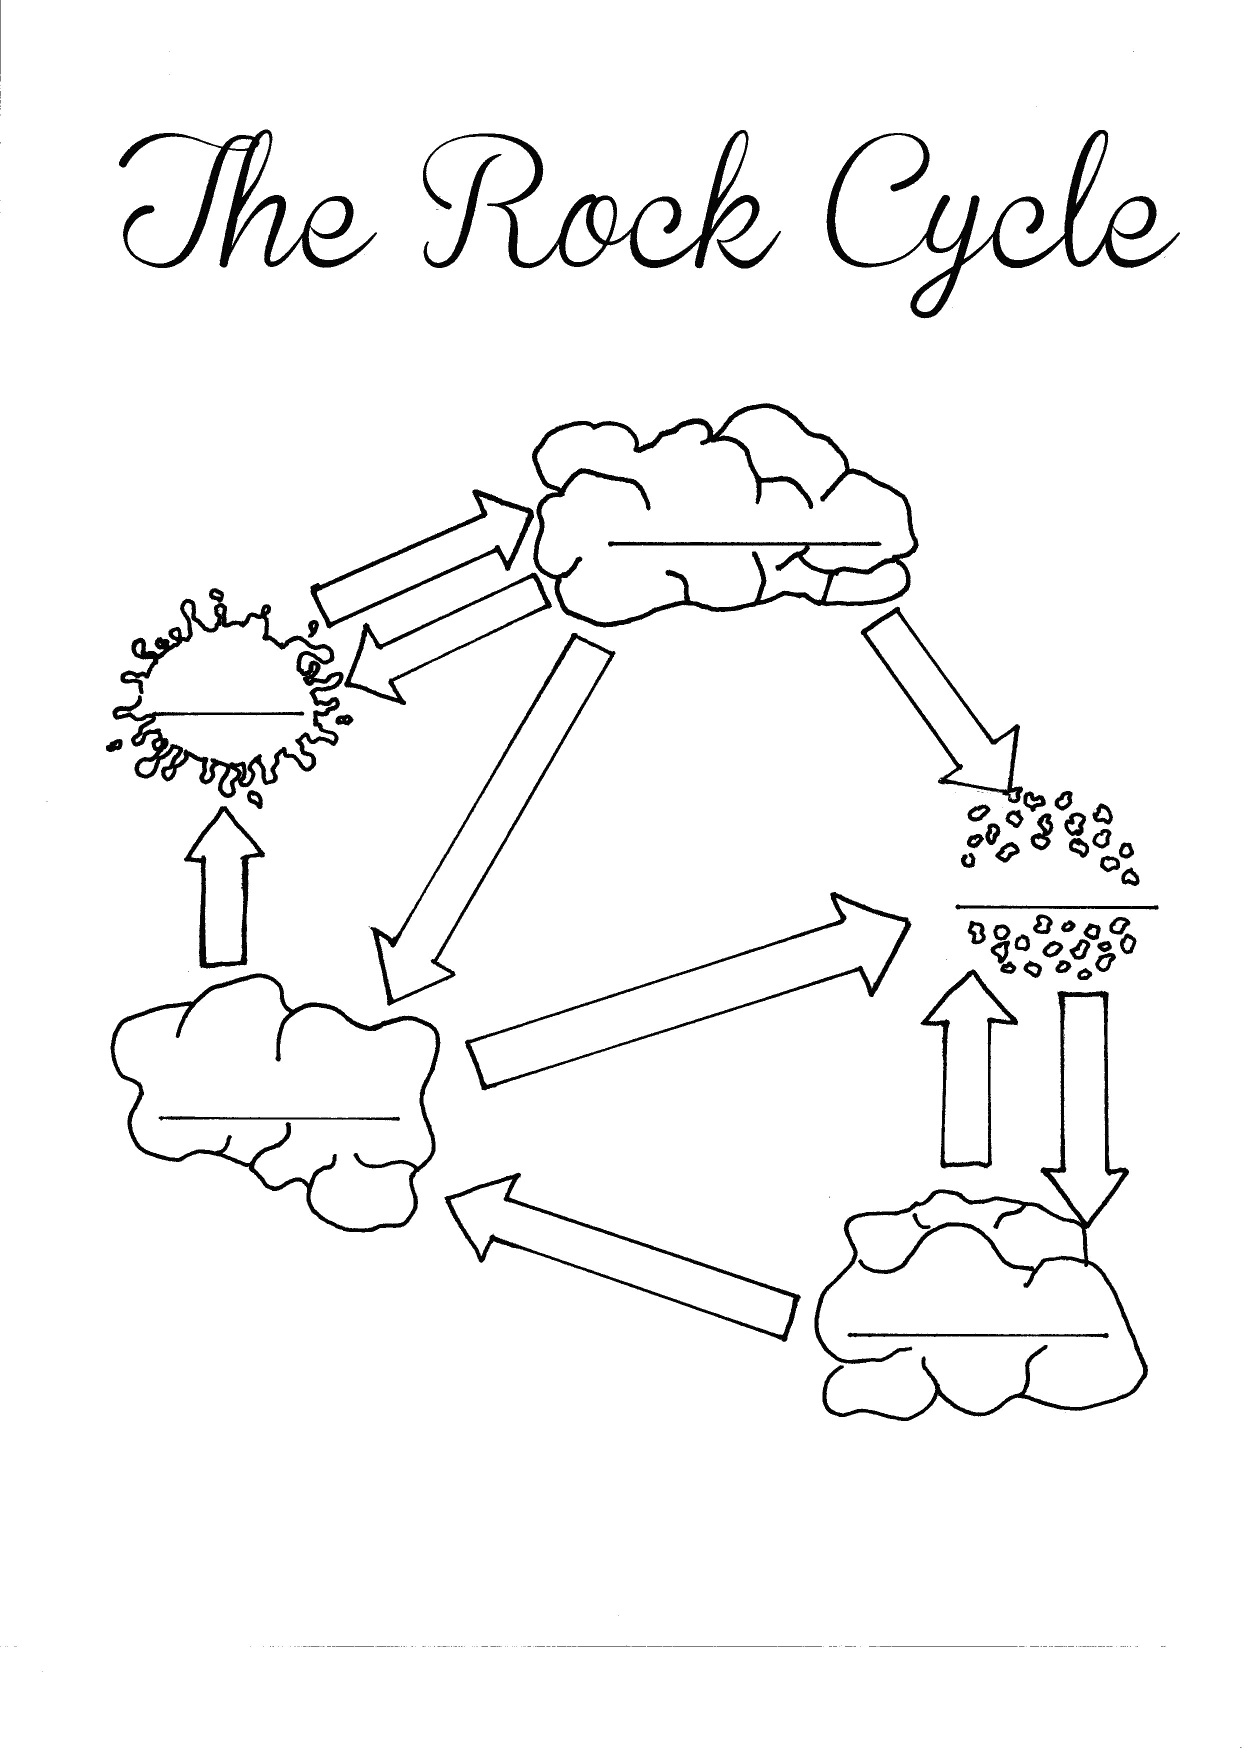 Rock Cycle Crossword Puzzle Pdf Worksheets For Kids ~ Themarketonholly - Rock Cycle Worksheets Free Printable